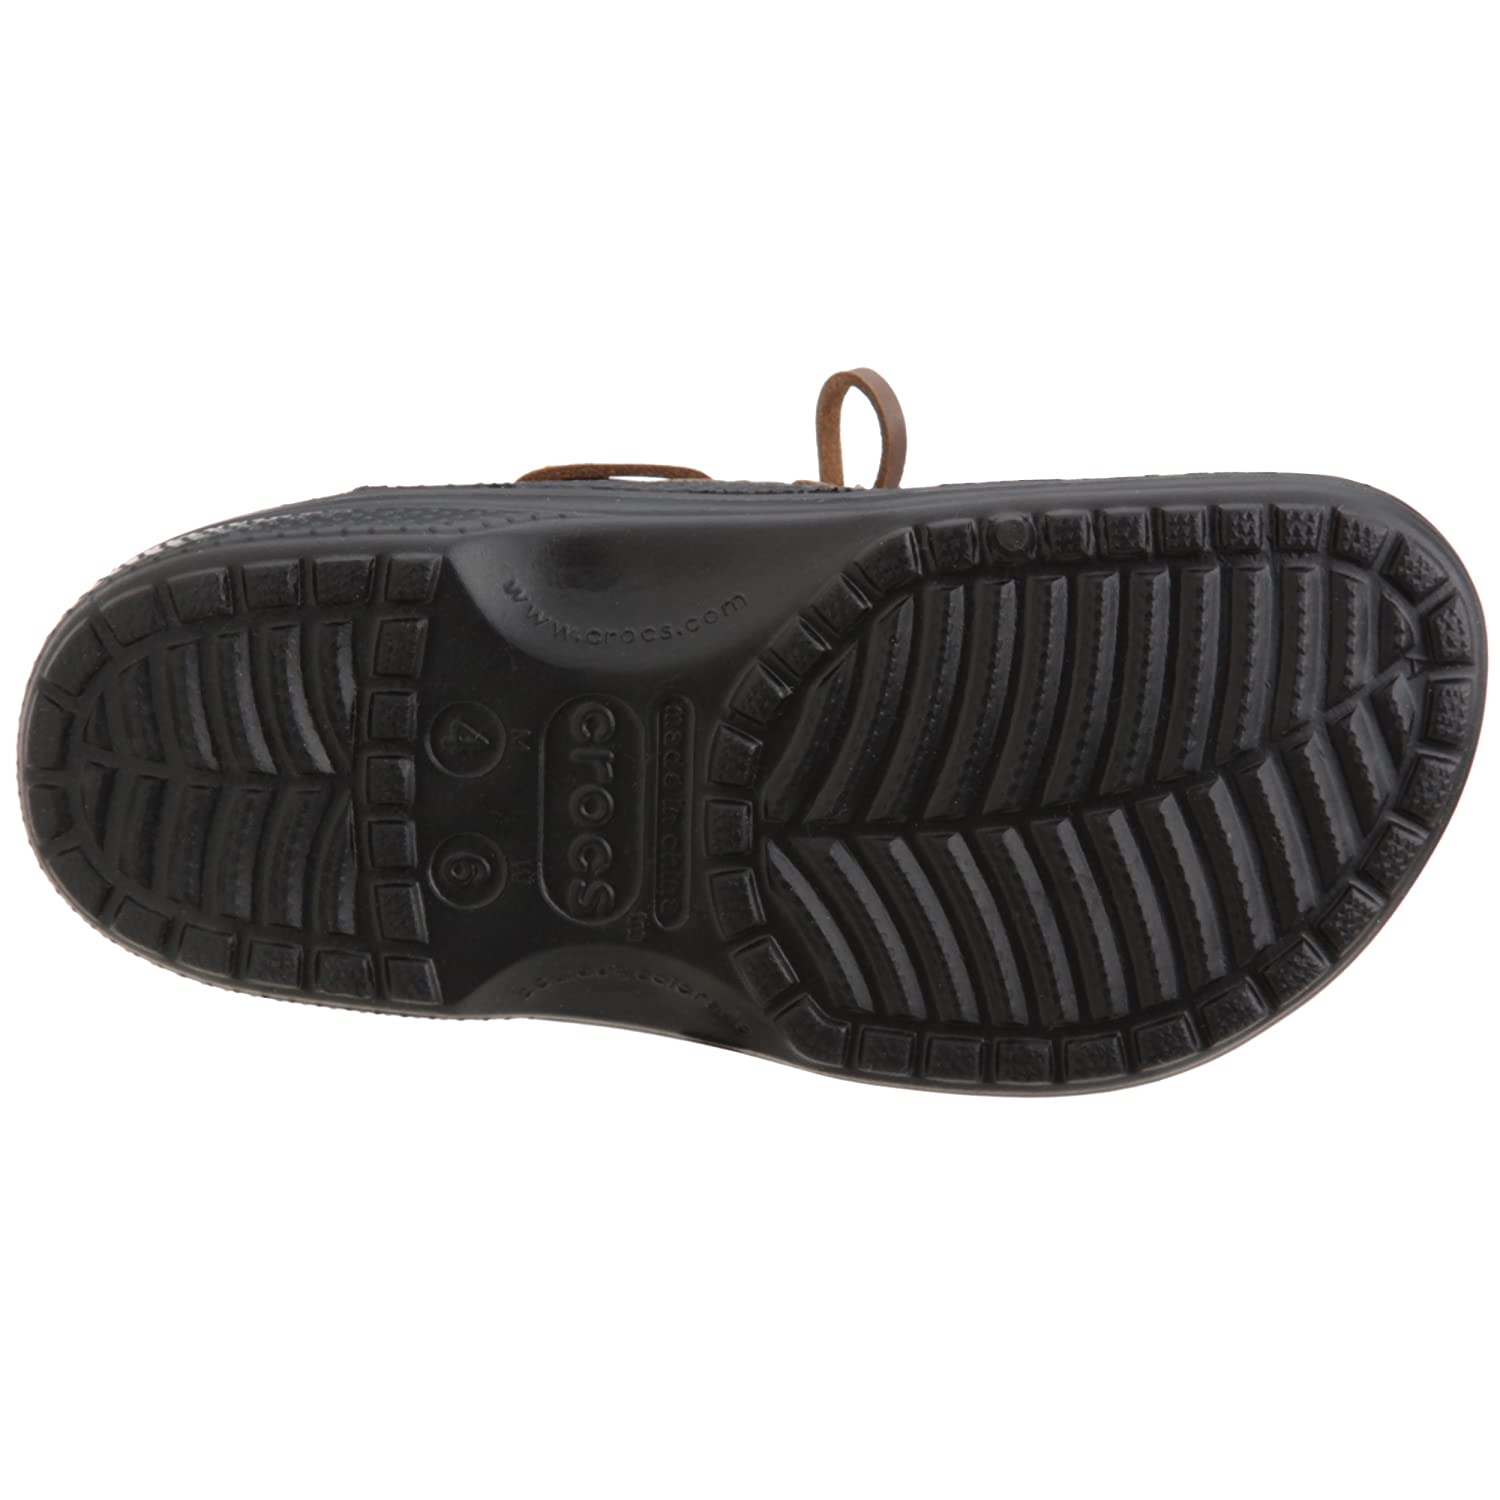 58e412b15 Crocs Islander Black Chocolate  Amazon.co.uk  Shoes   Bags